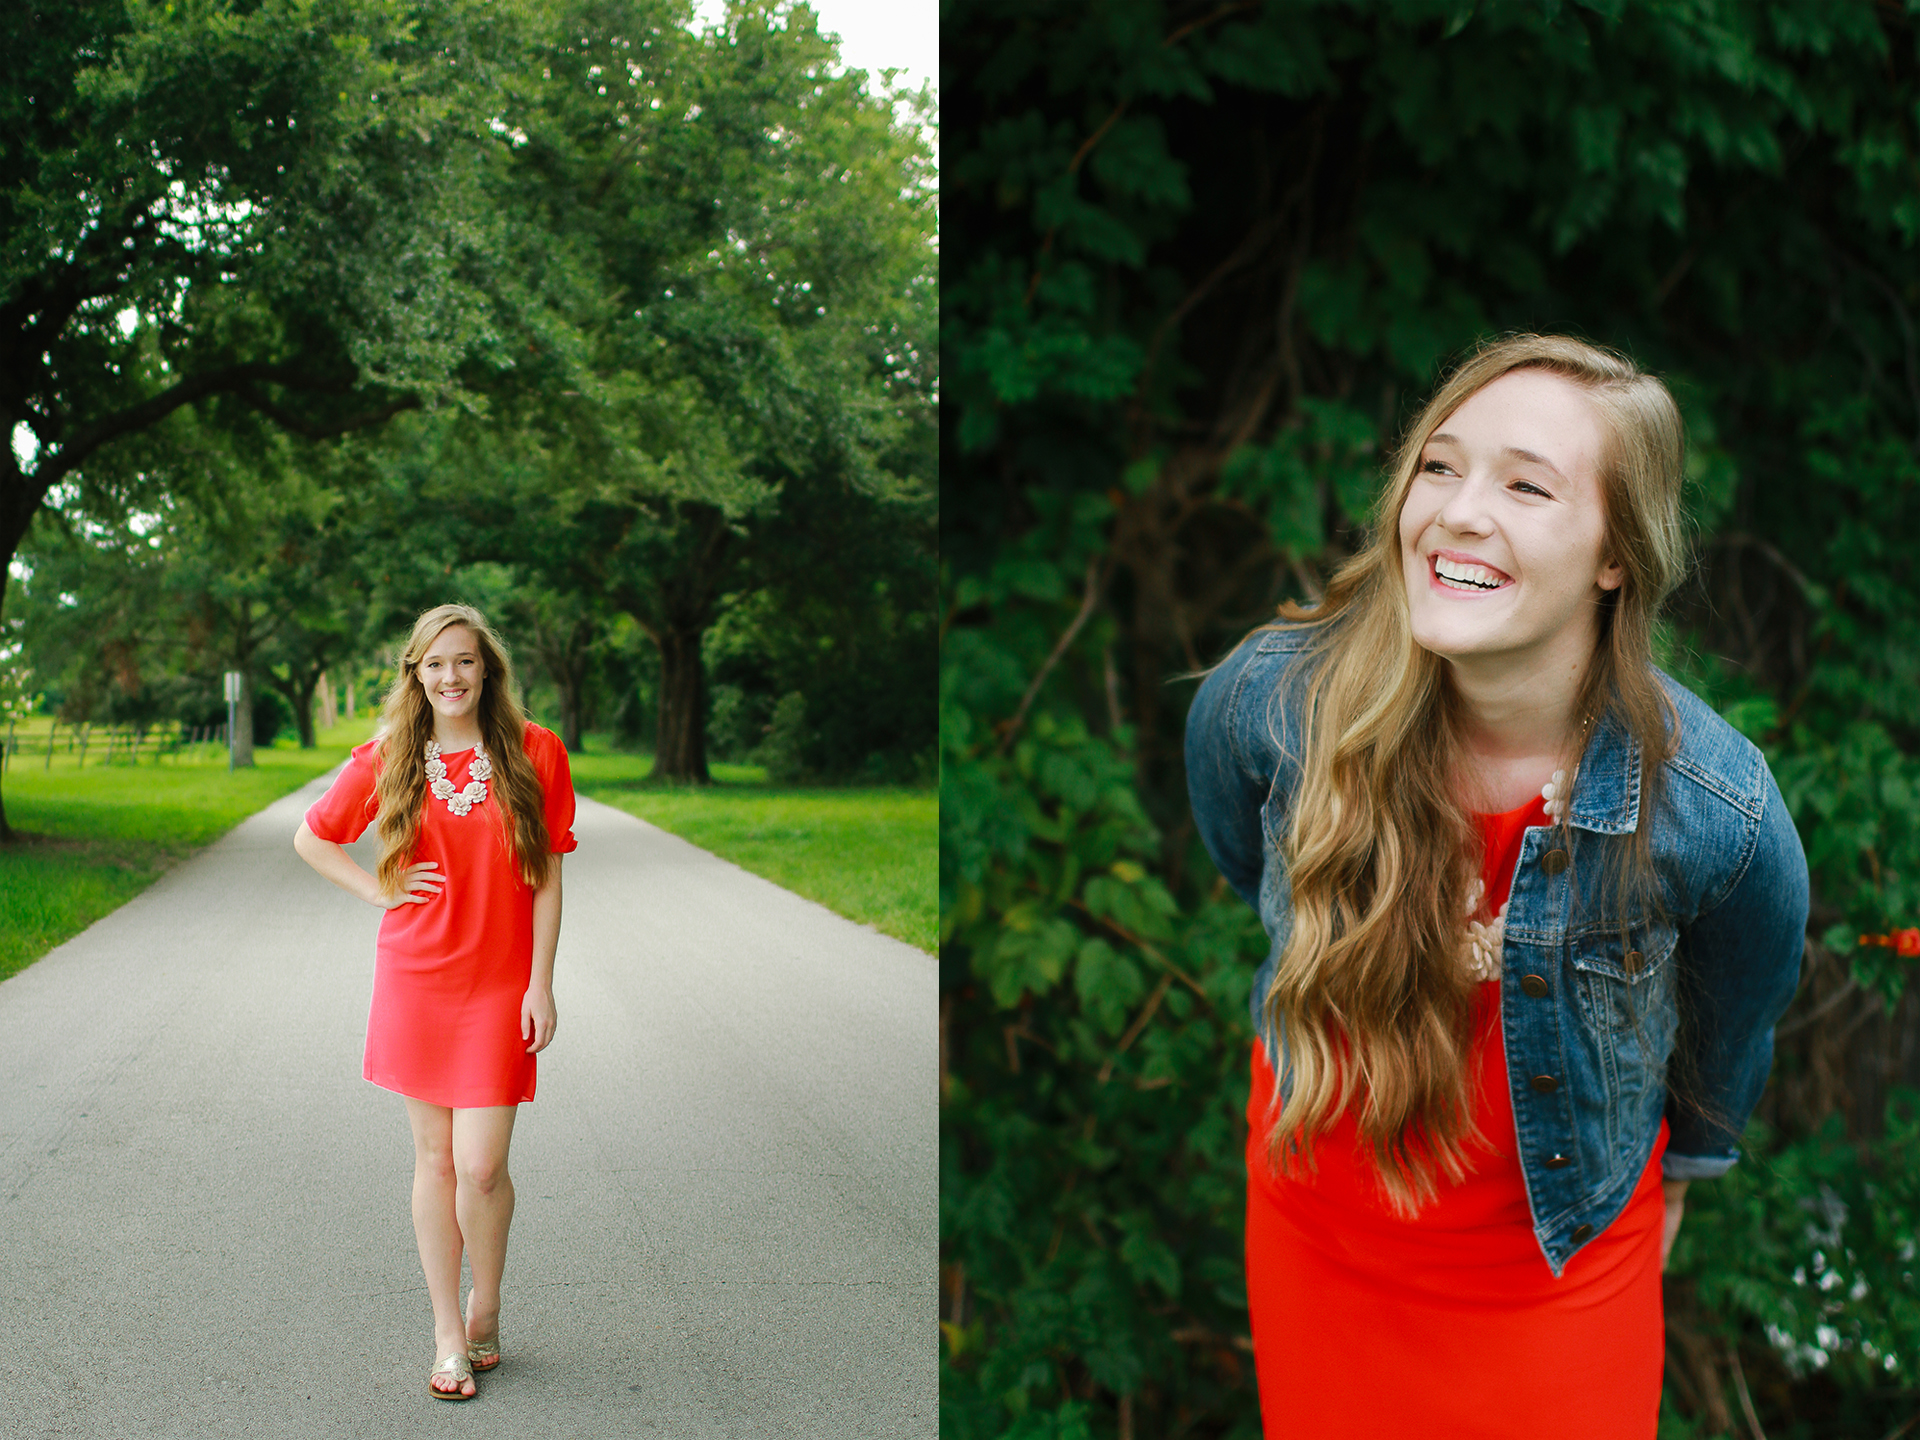 outdoor red dress portraits.jpg